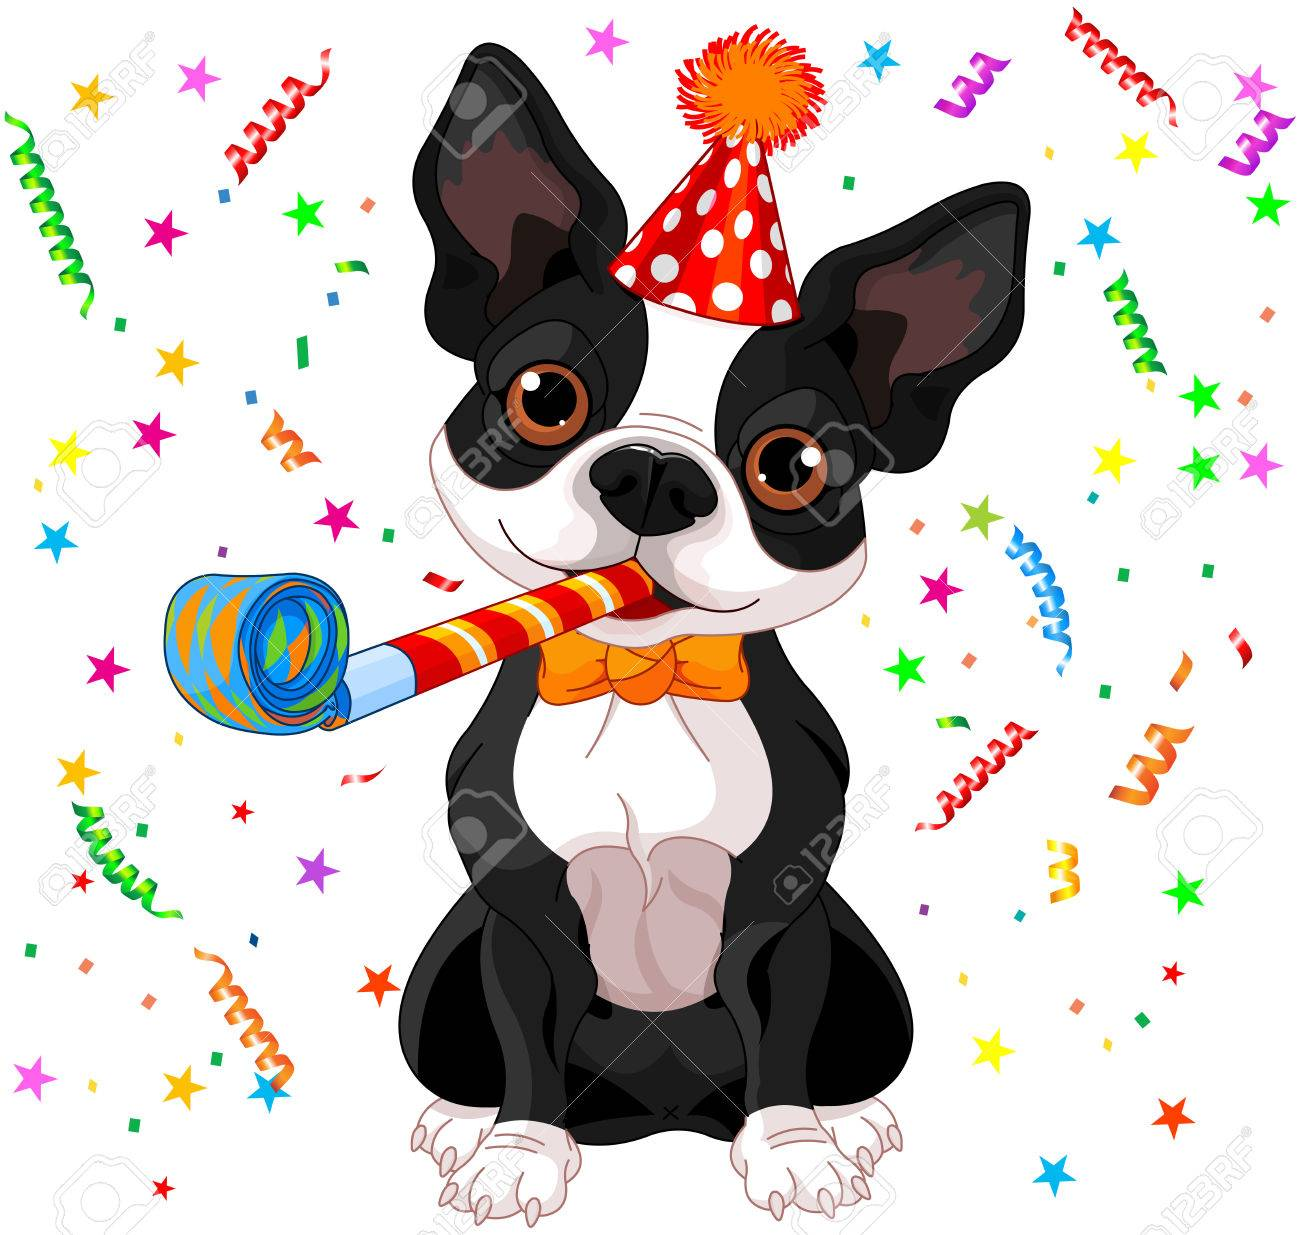 Peur en extérieur (ville, jardin, ...) - Page 2 35588778-illustration-of-cute-boston-terrier-celebrating